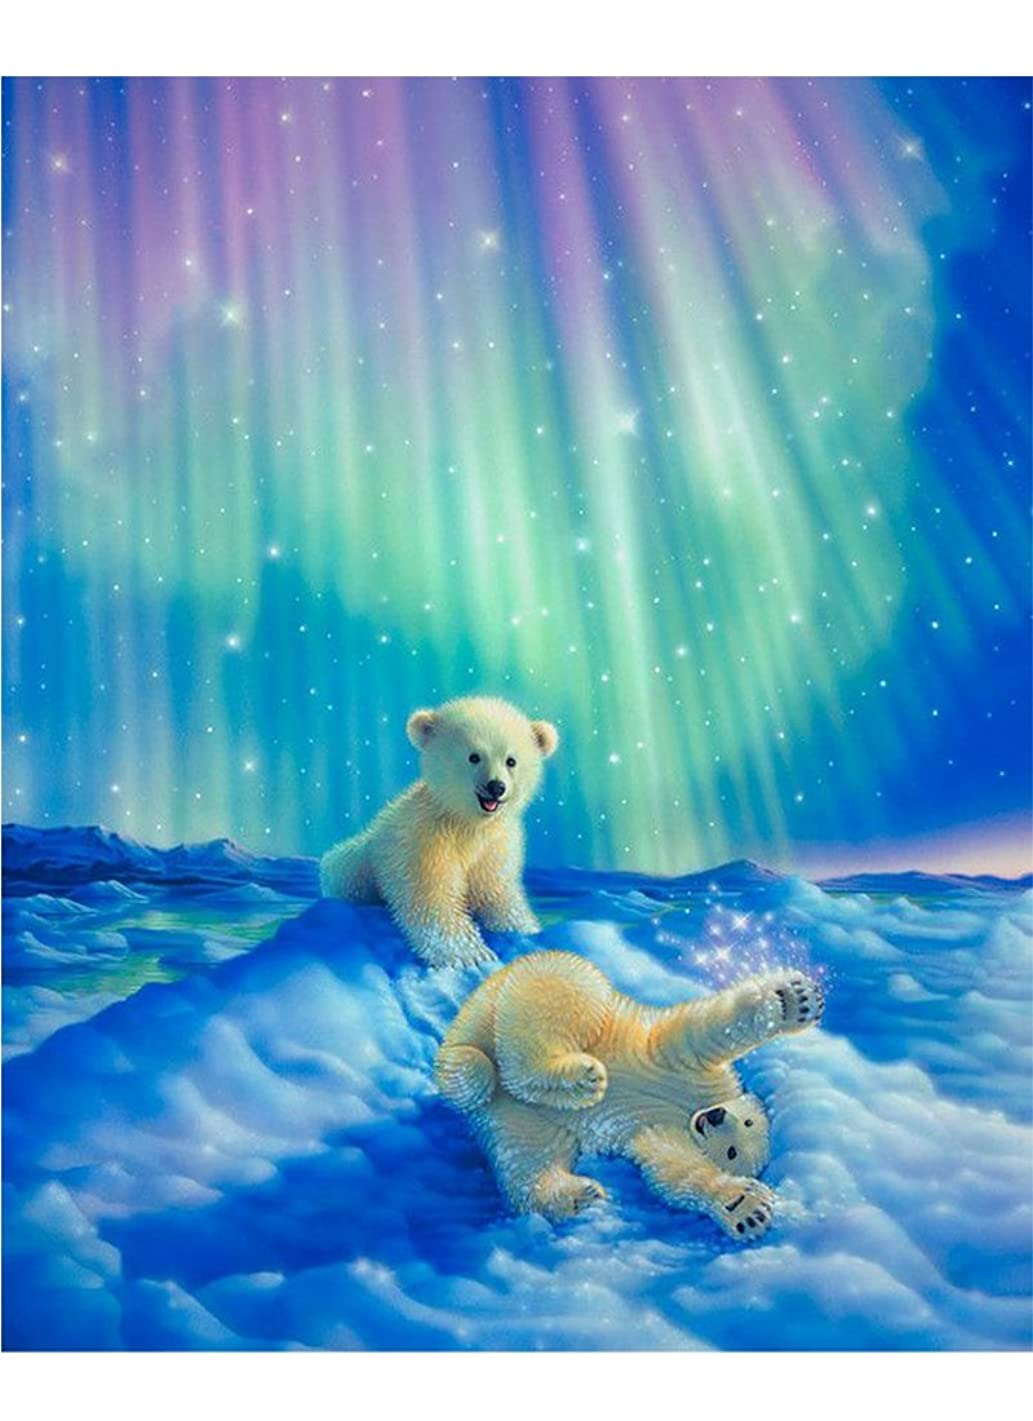 Mobicus Blxecky 5D DIY Diamond Painting by Number Kits,Two Little Bear(12X16inch/30X40CM)